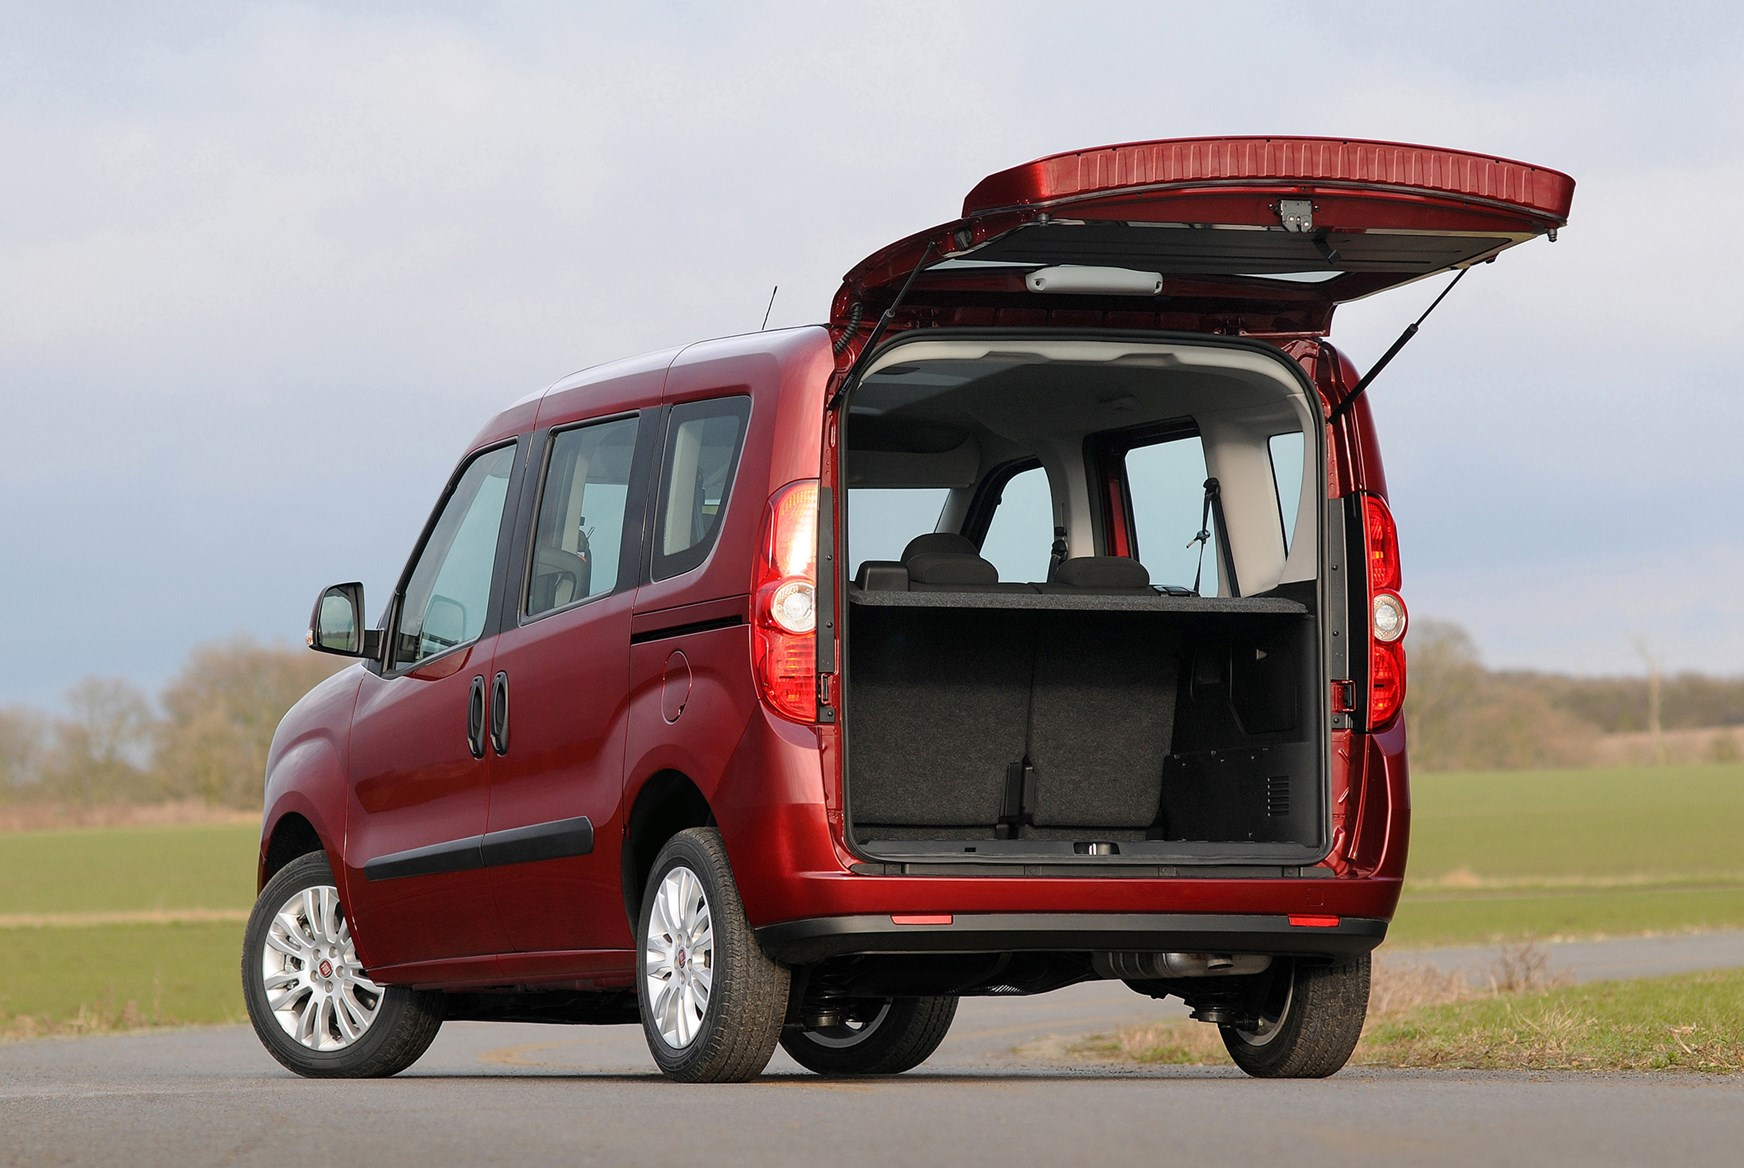 fiat doblo estate review 2010 parkers. Black Bedroom Furniture Sets. Home Design Ideas